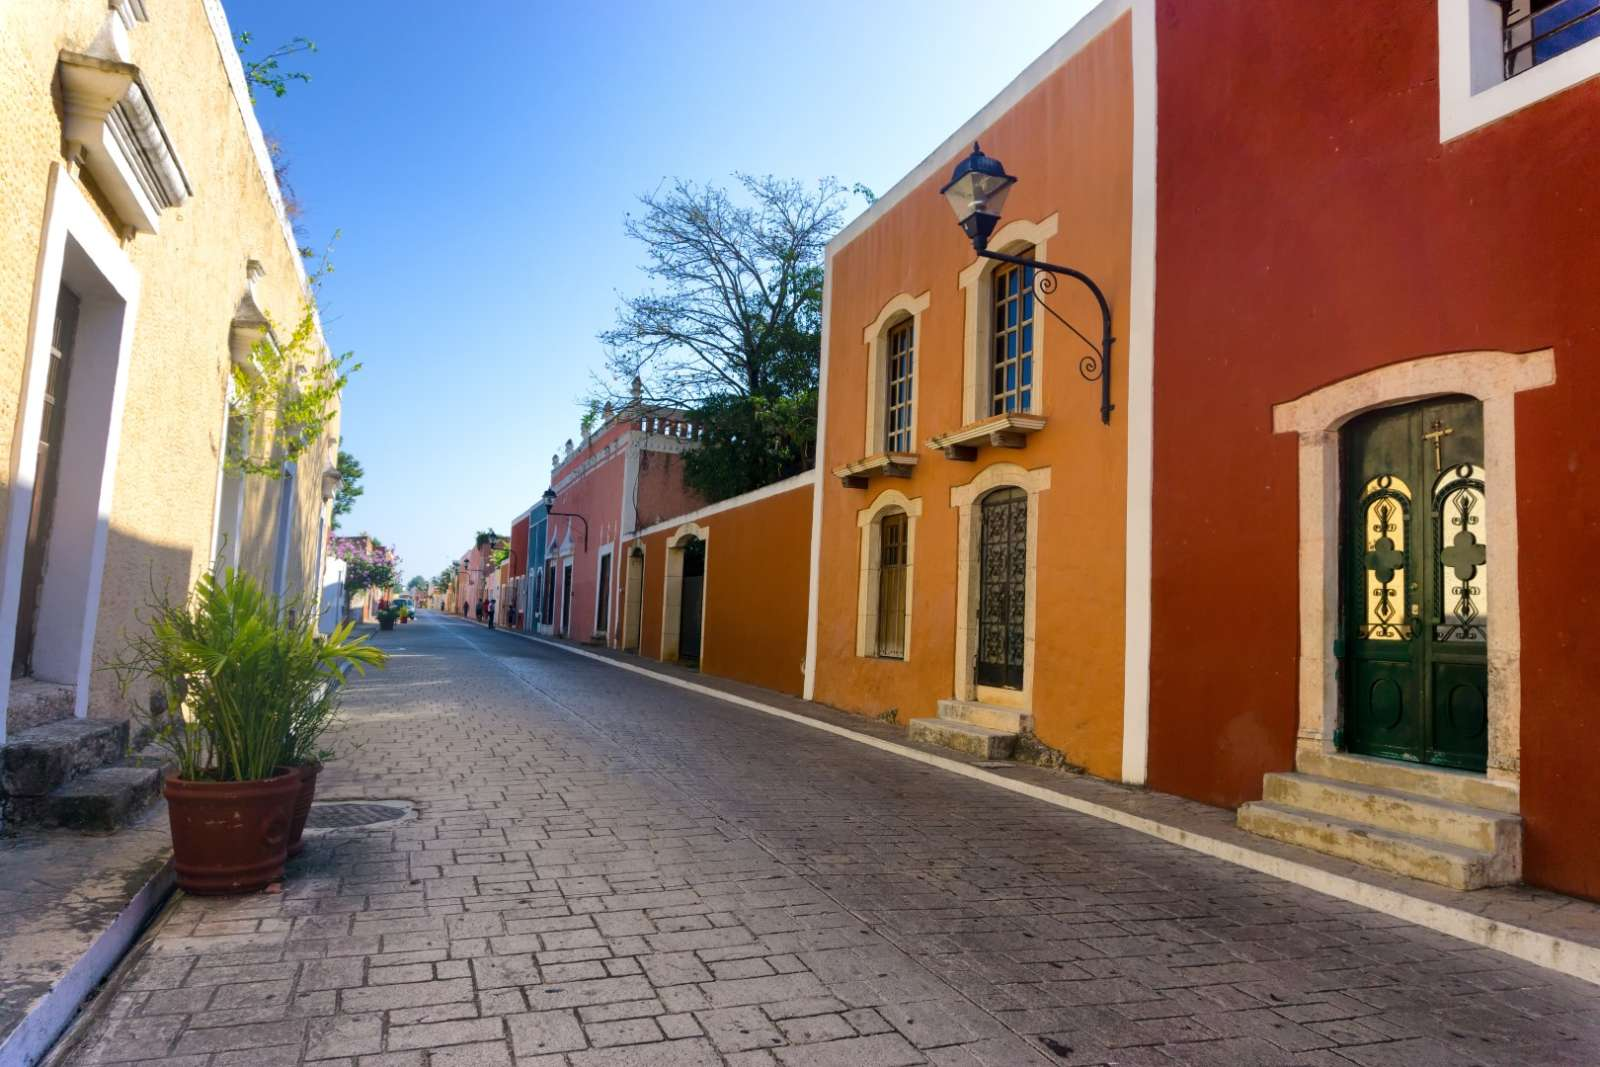 Colourful and quiet street in Valladolid Mexico